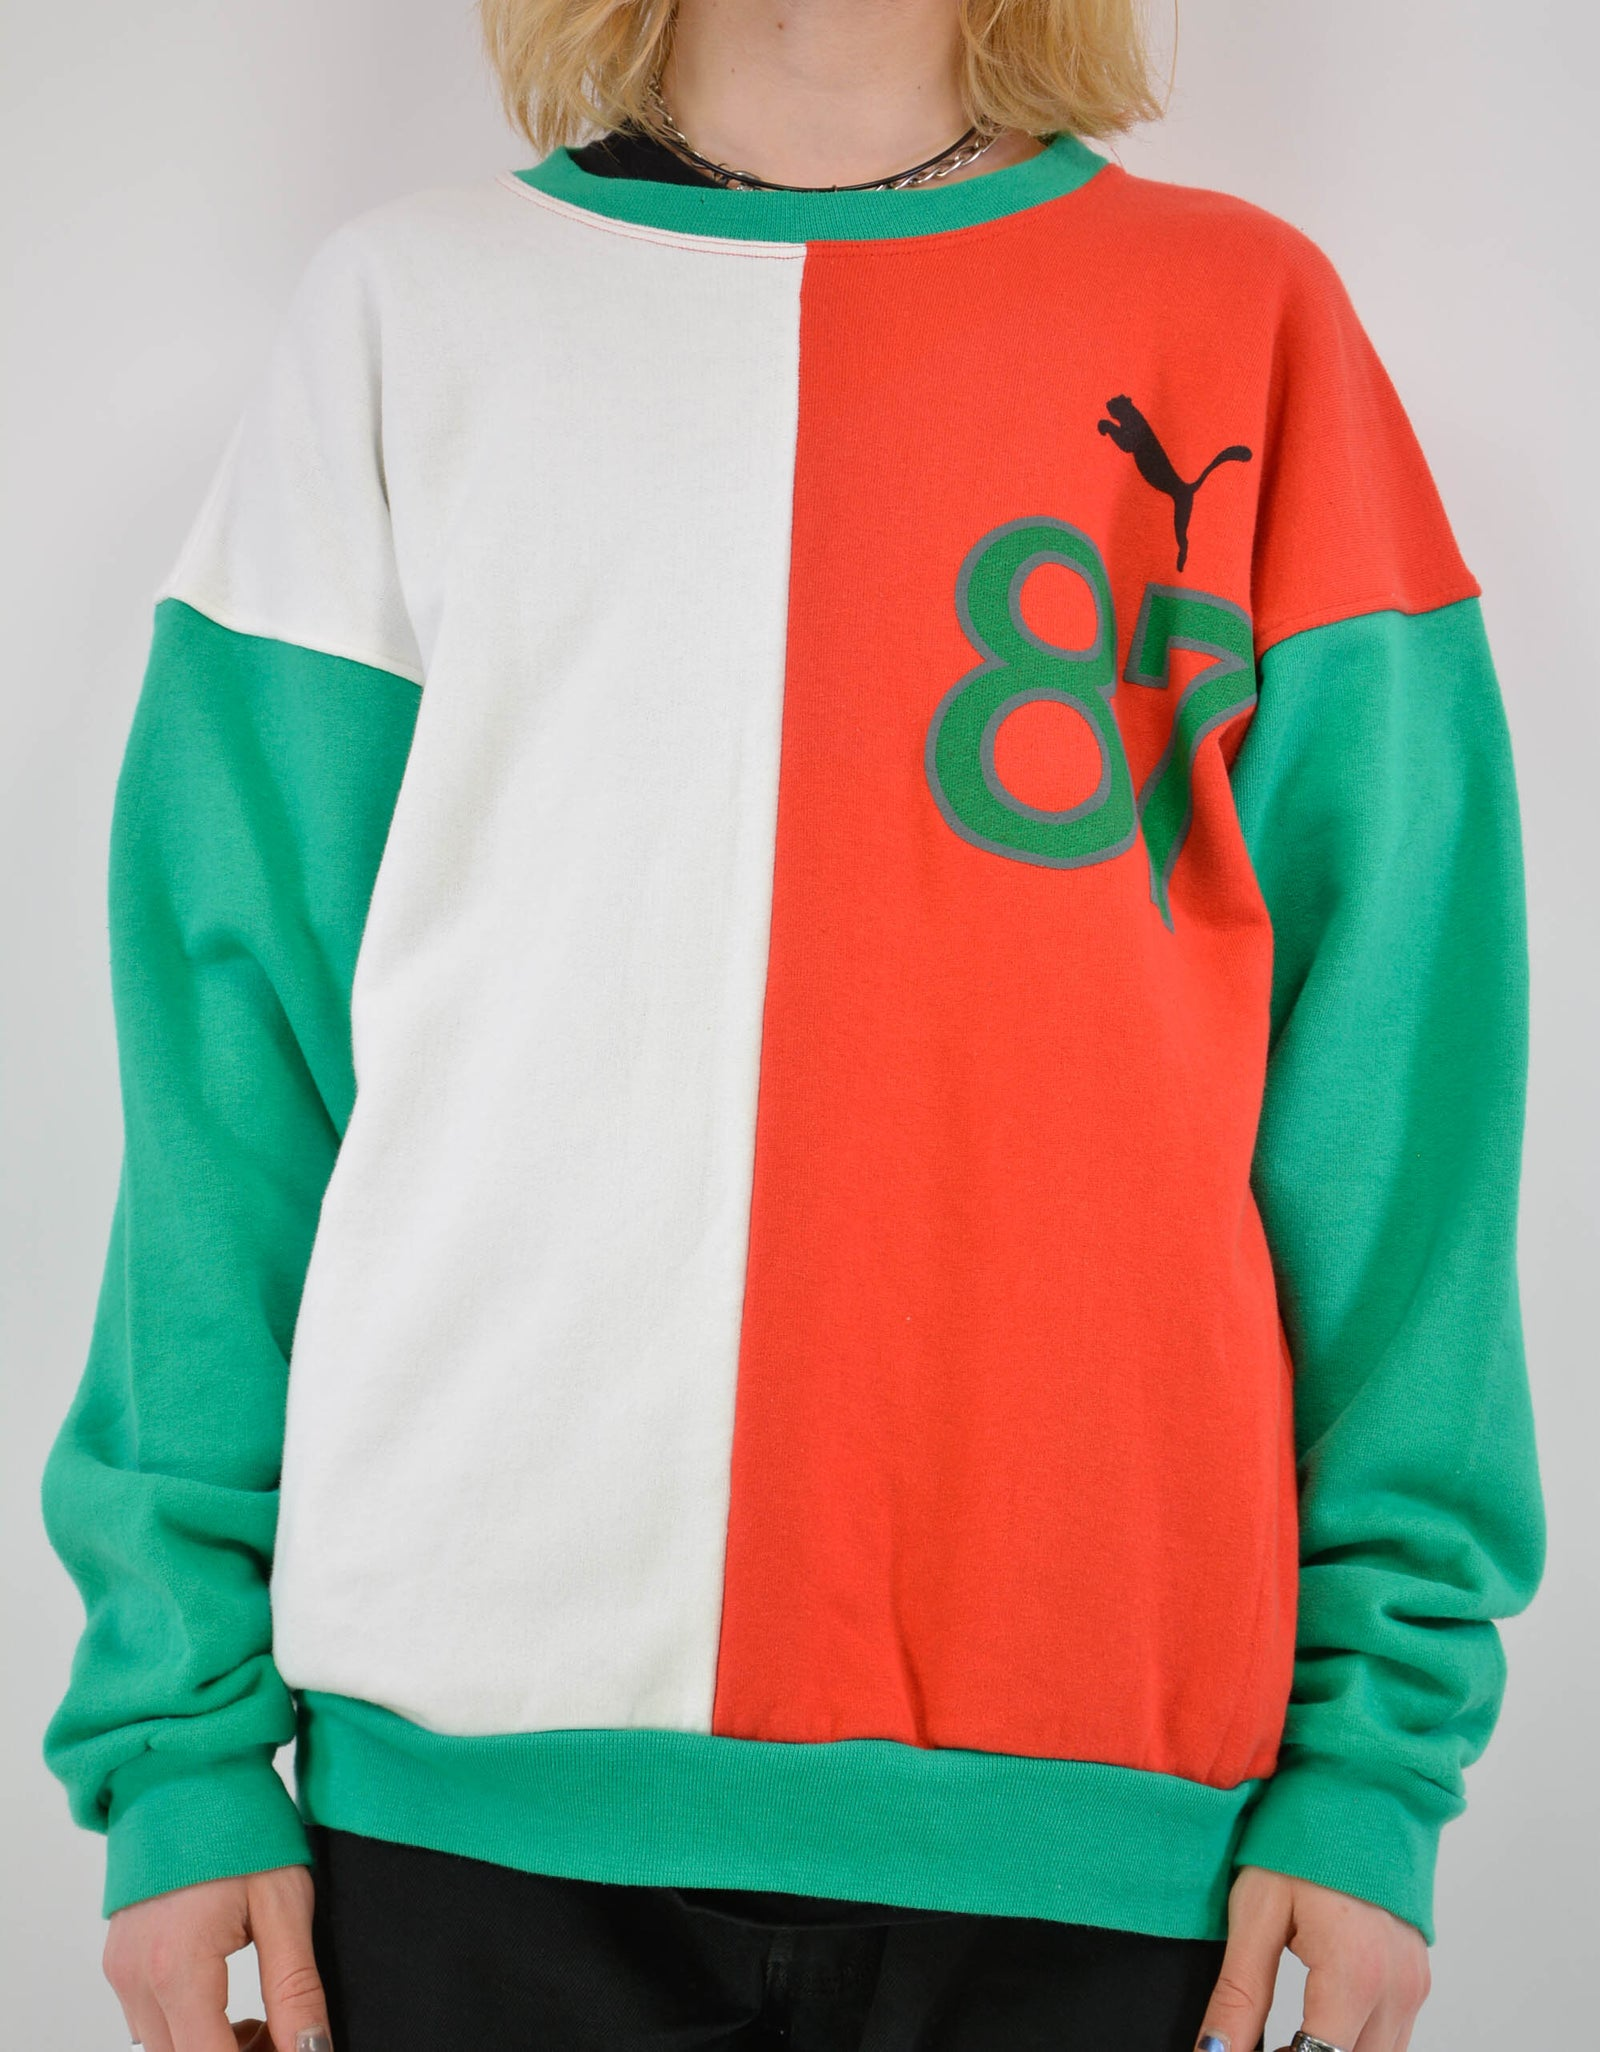 Special sport sweater - PICKNWEIGHT - VINTAGE KILO STORE